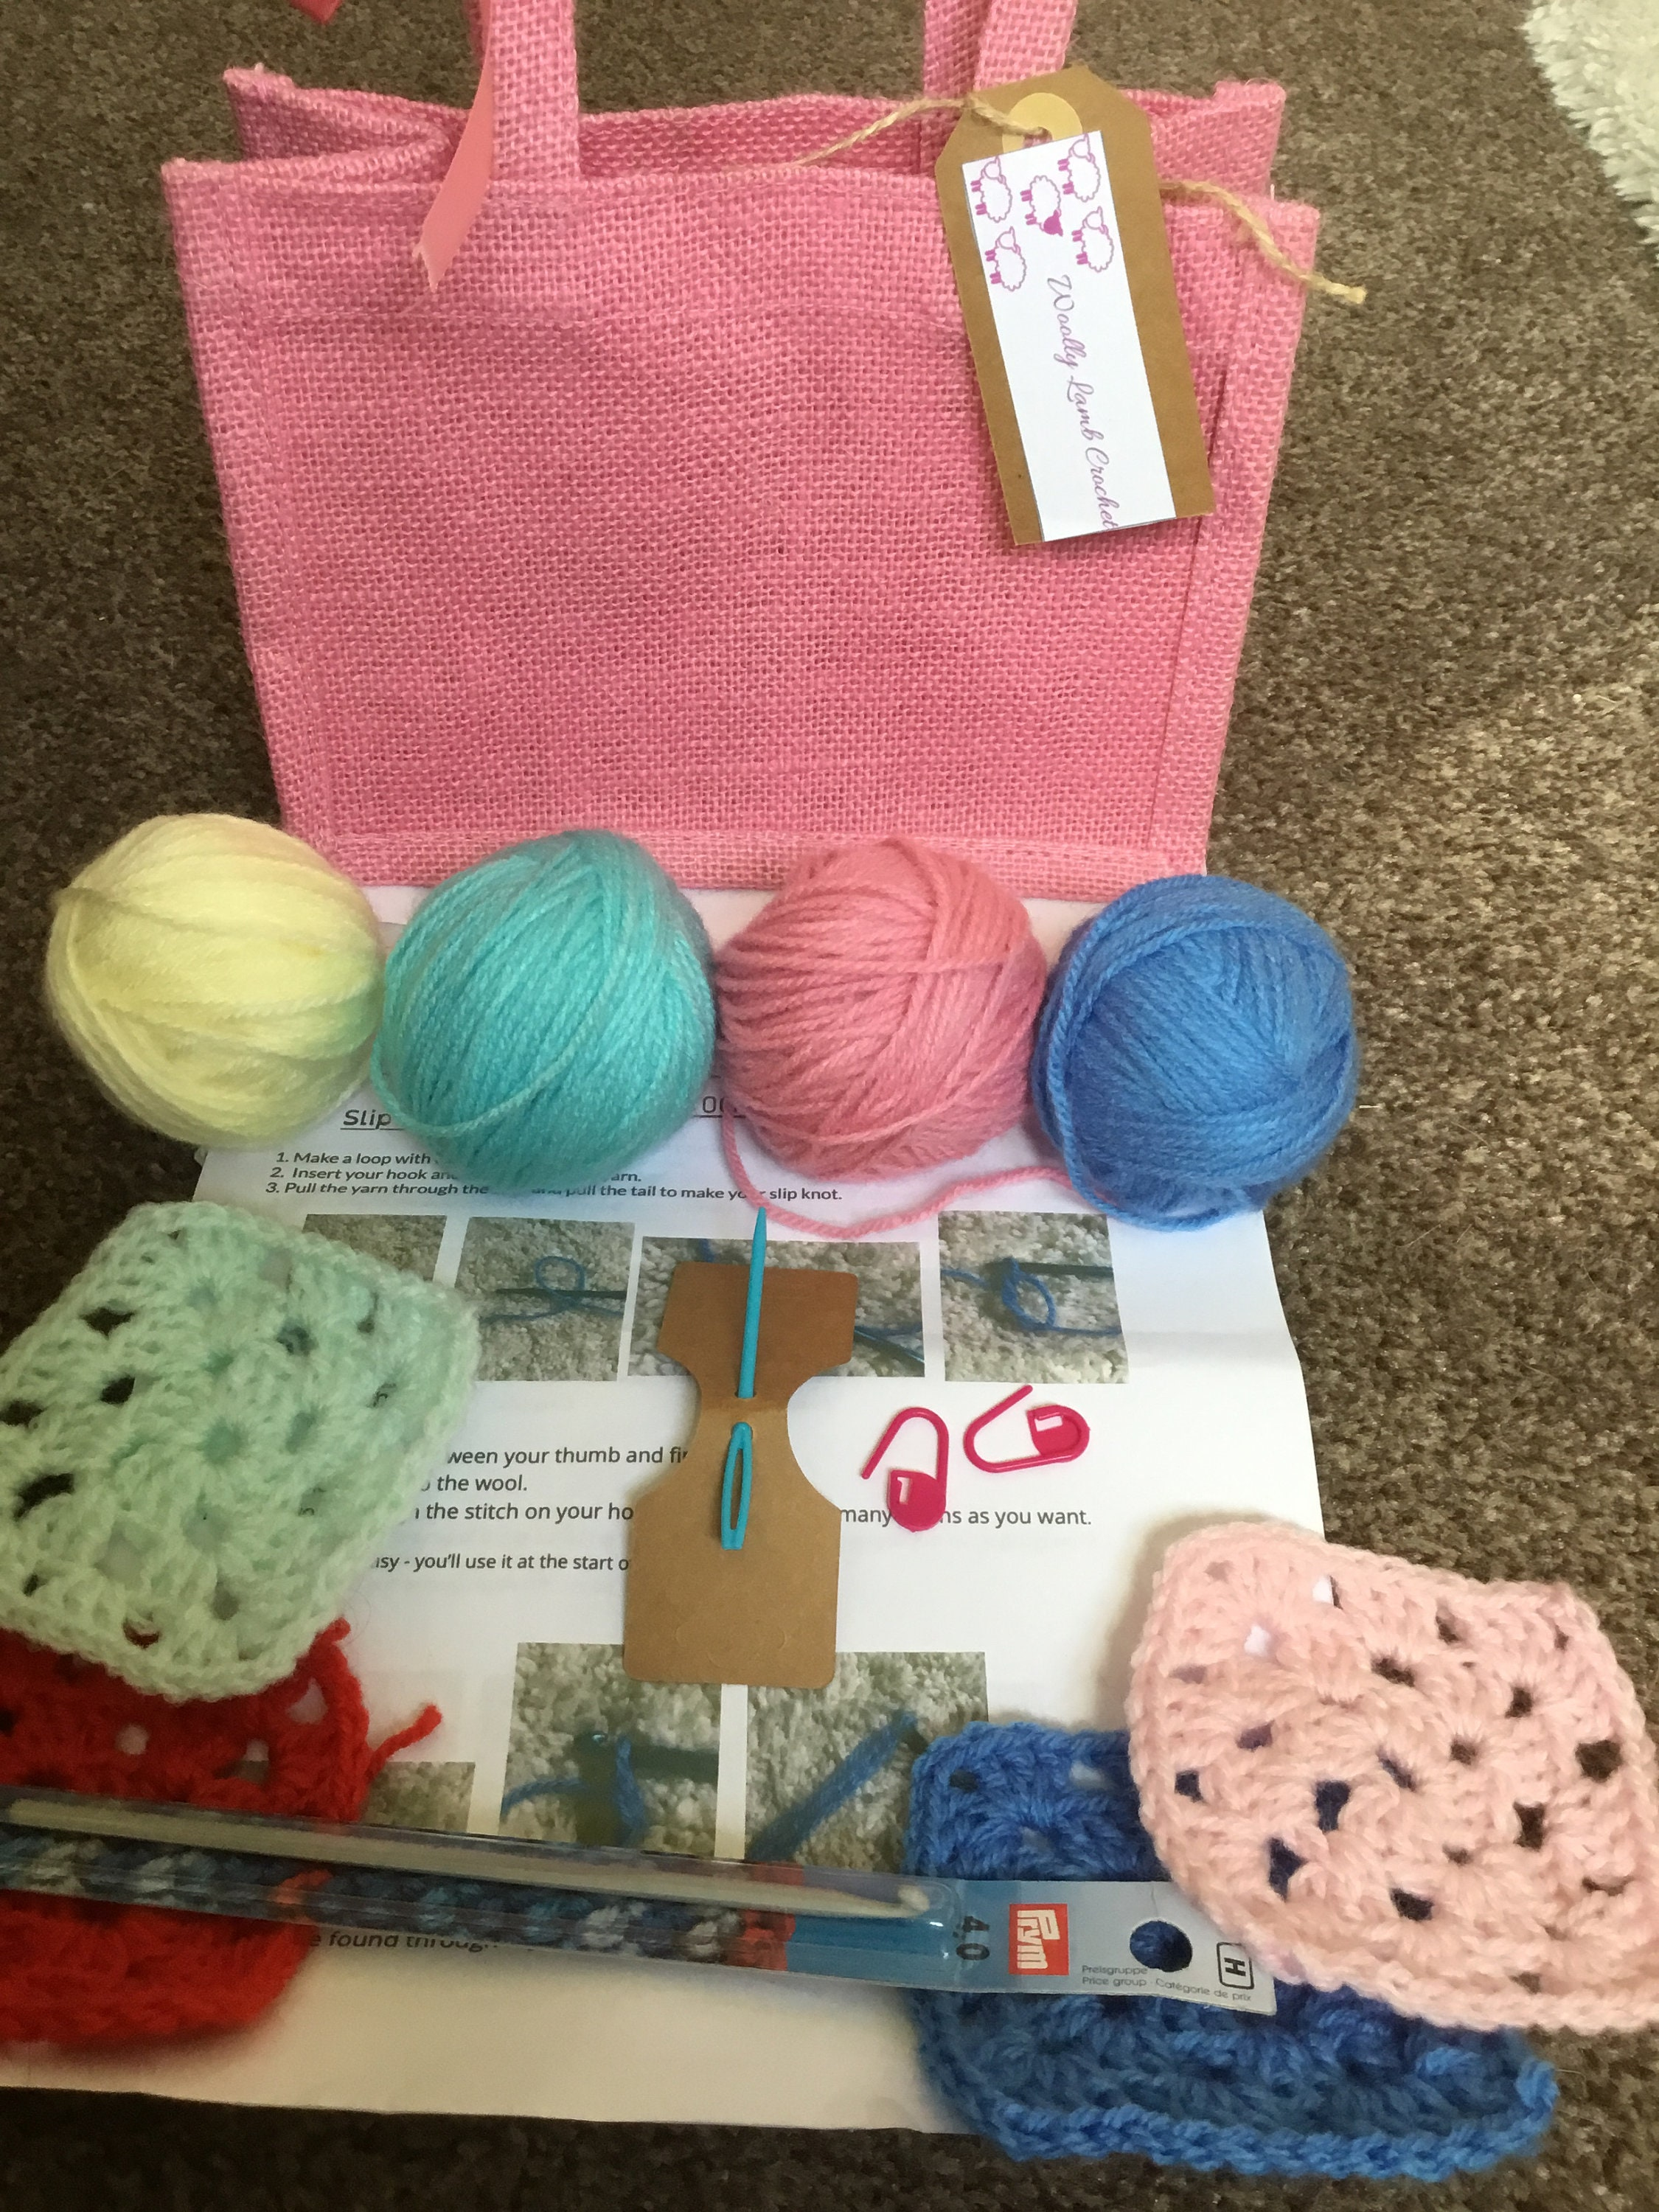 Loops and threads learn to crochet kit